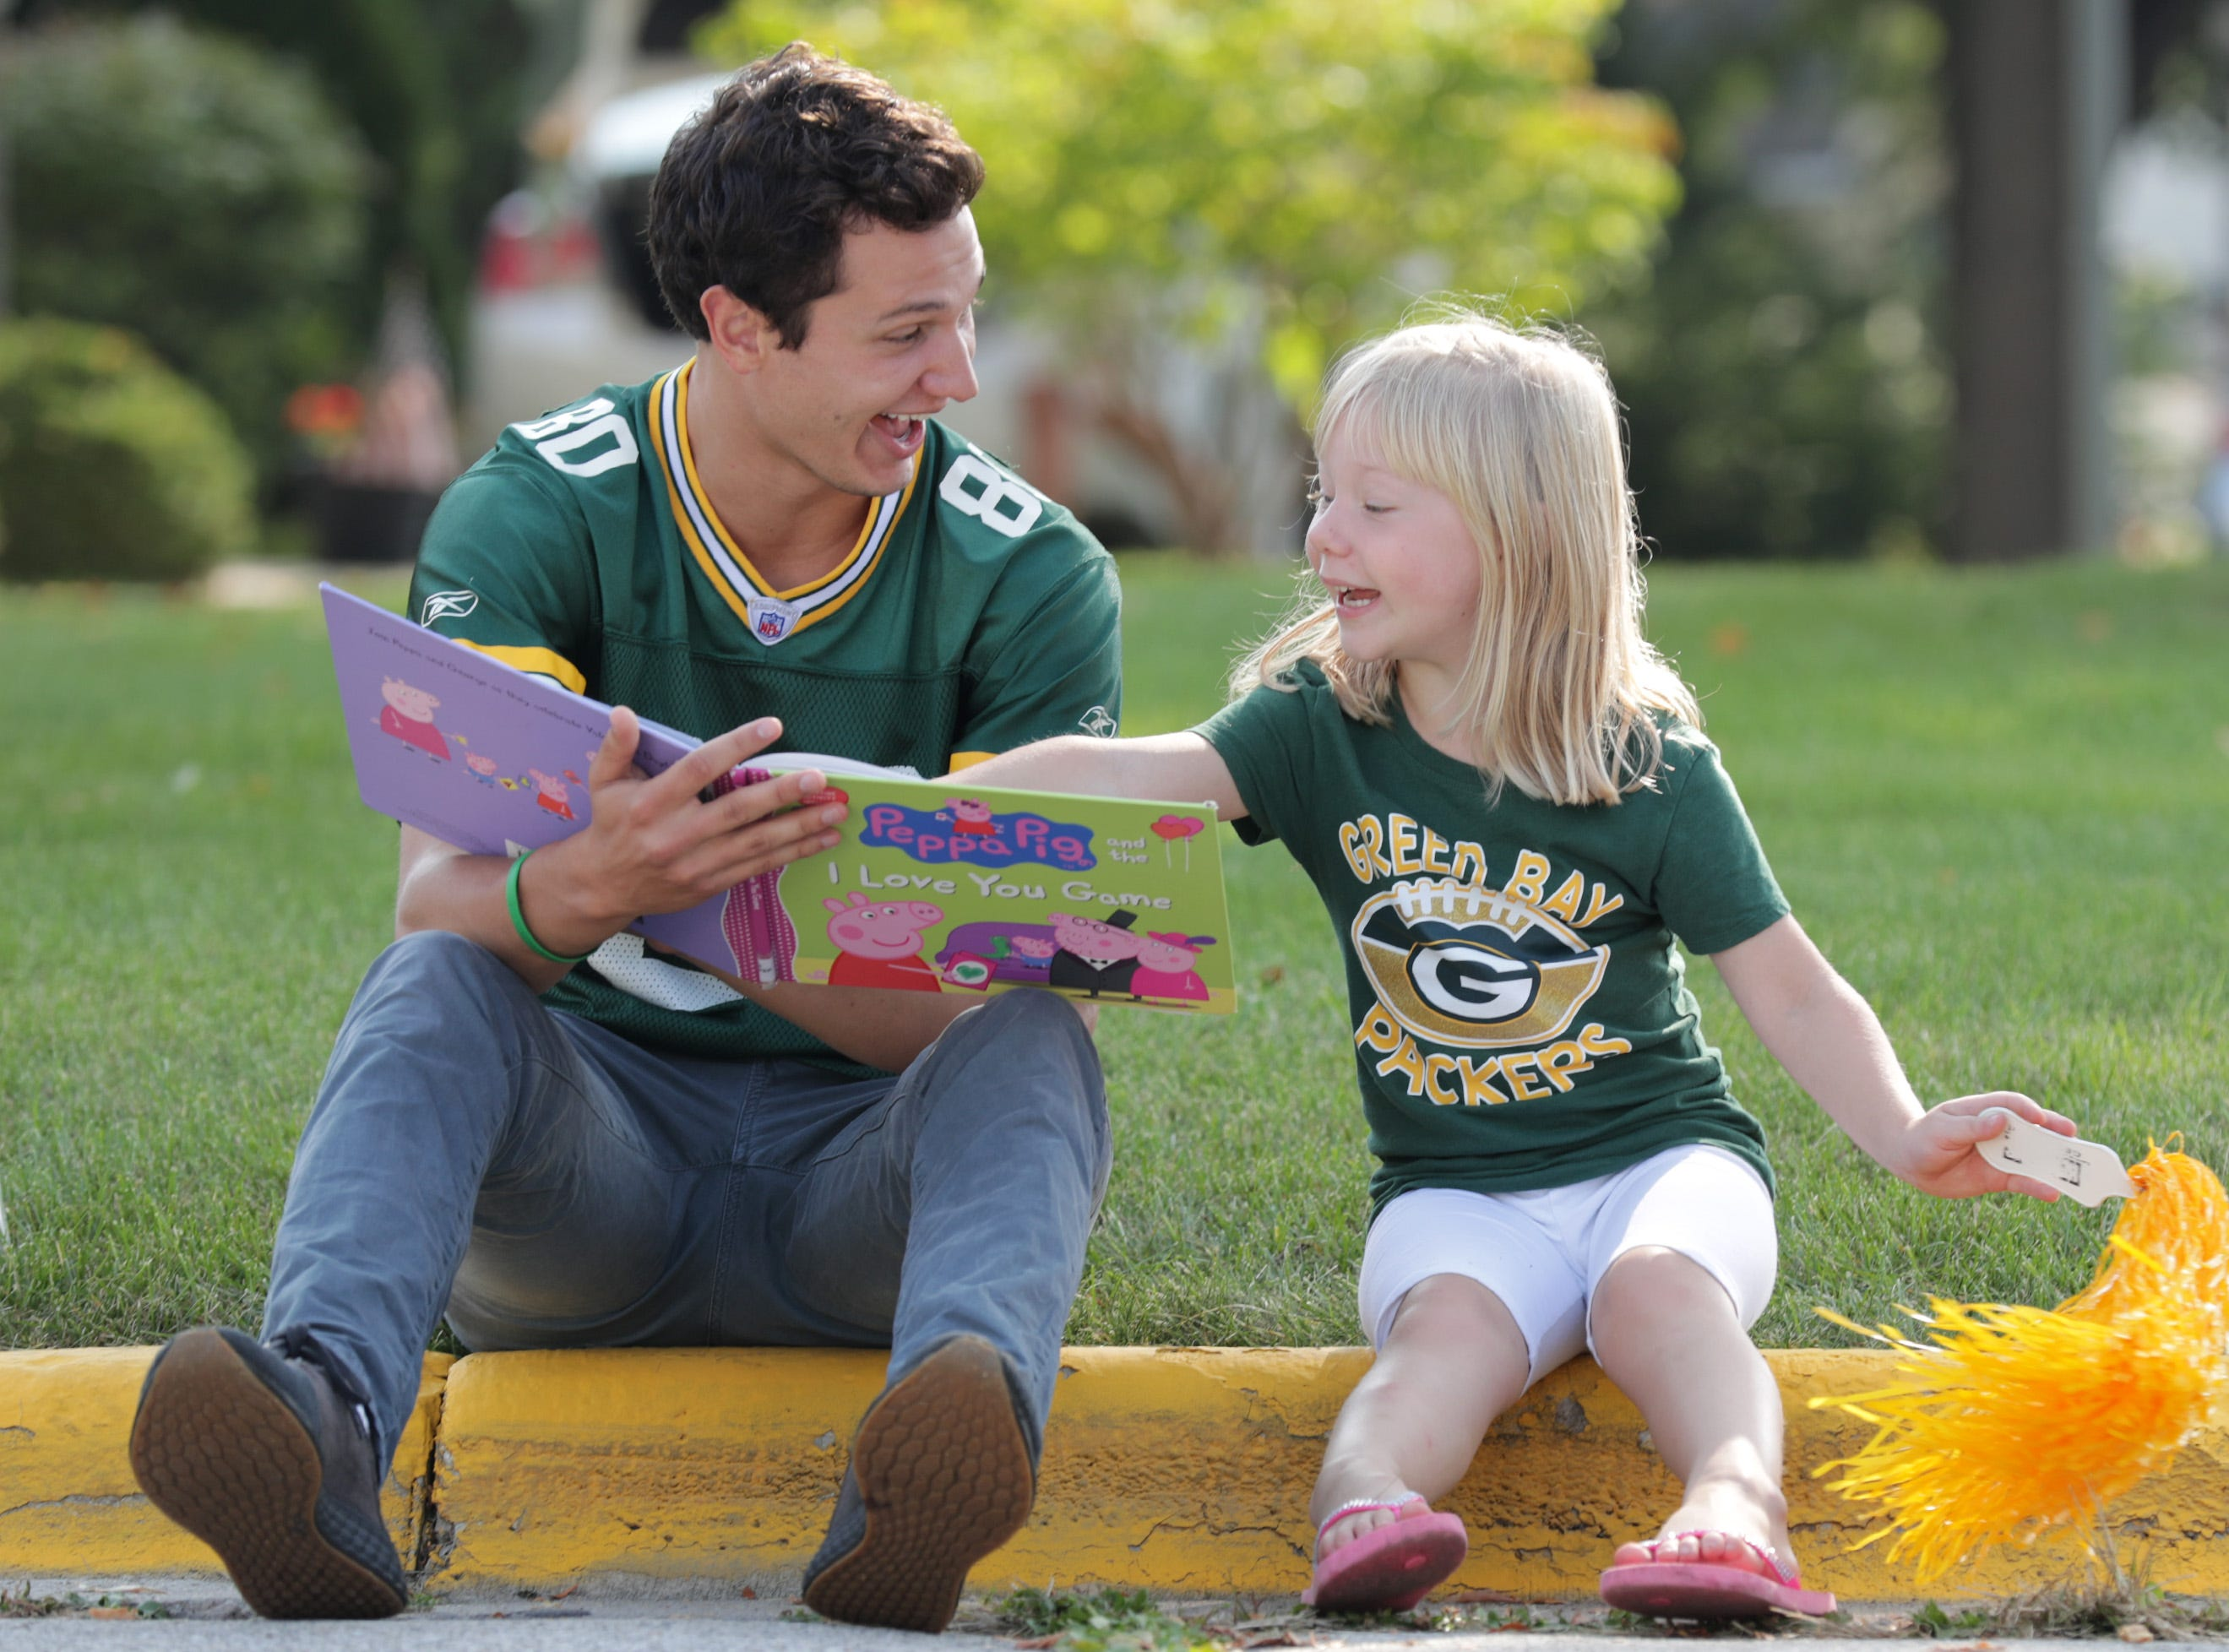 Neighbors Jake Imig and Lily Sota read a book together while helping to park cars on Wildwood Ln. before the Green Bay Packers host the Minnesota Vikings on Sunday, September 16, 2018, at Lambeau Field in Green Bay, Wis.